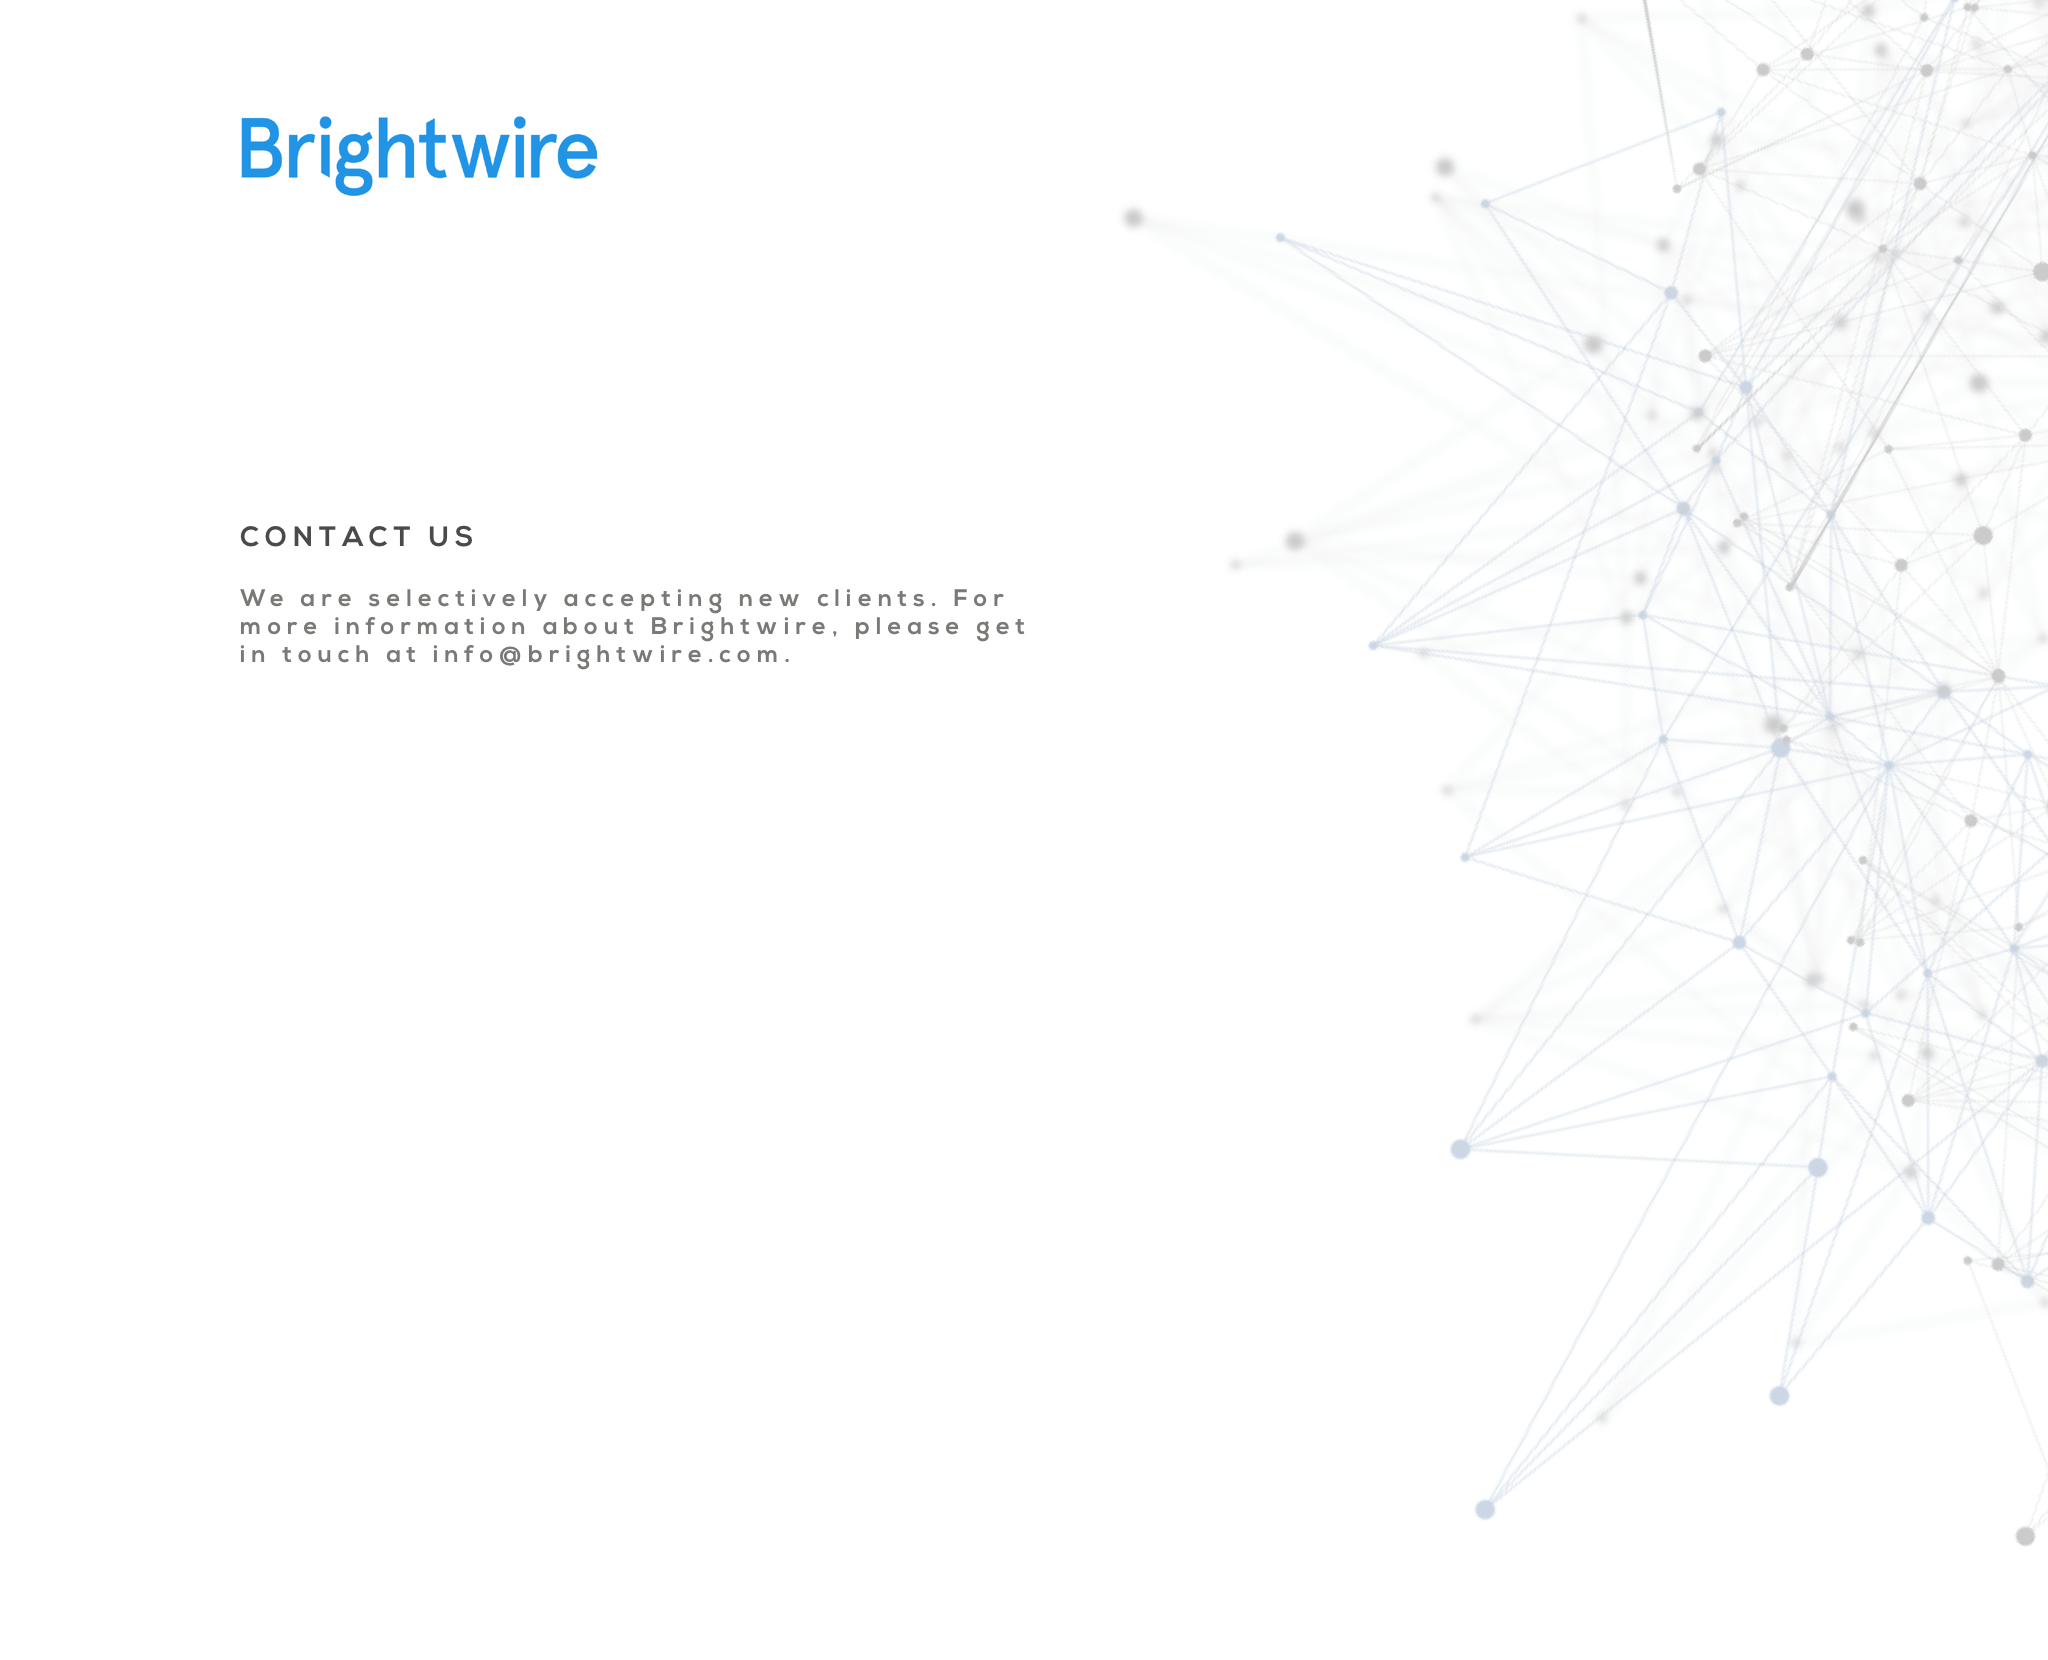 Brightwire: For more information please get in touch at info@brightwire.com